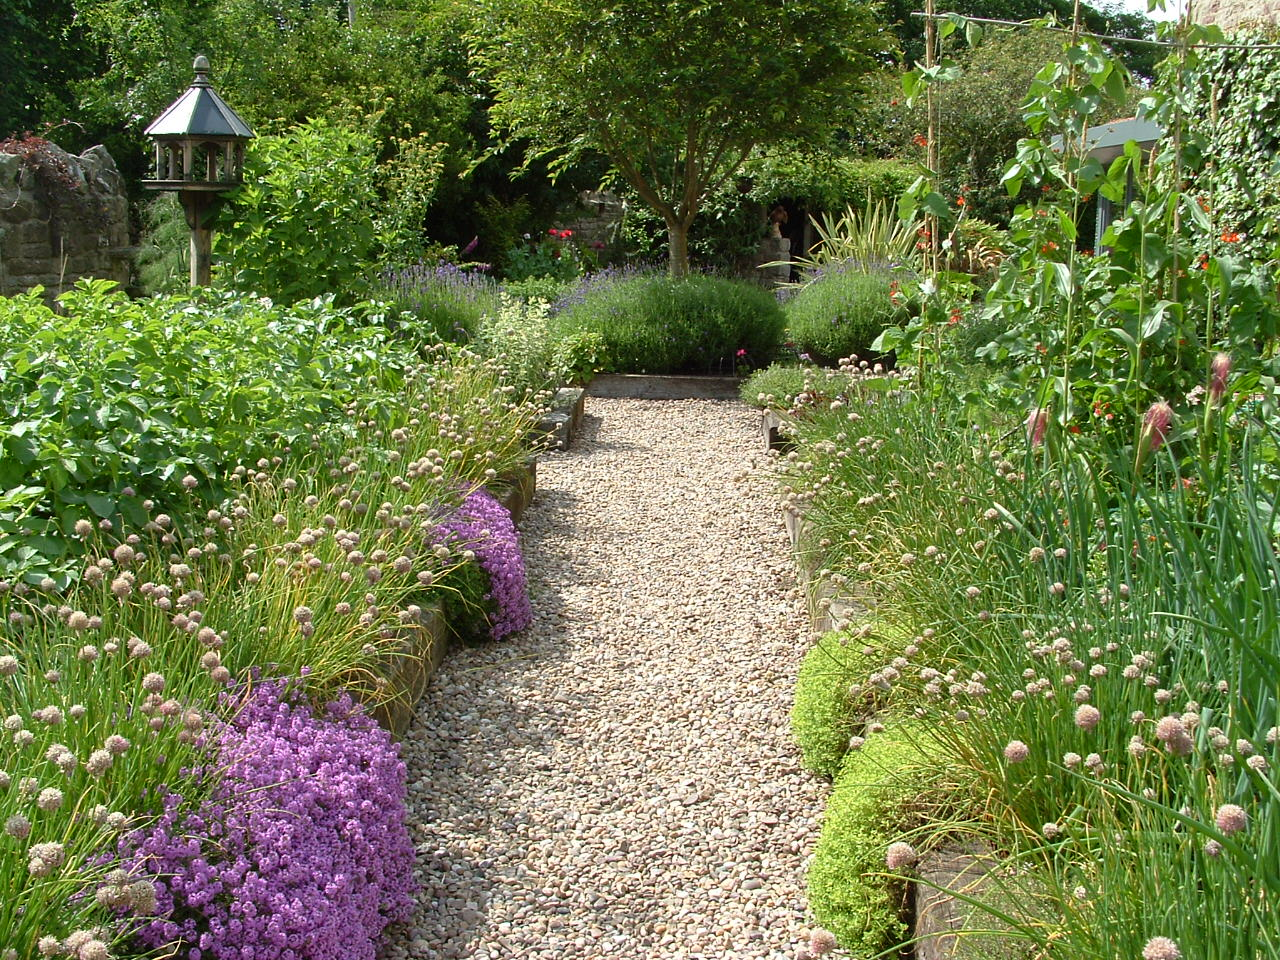 Traditional herb garden with a gravel path edged by timber board raised beds.